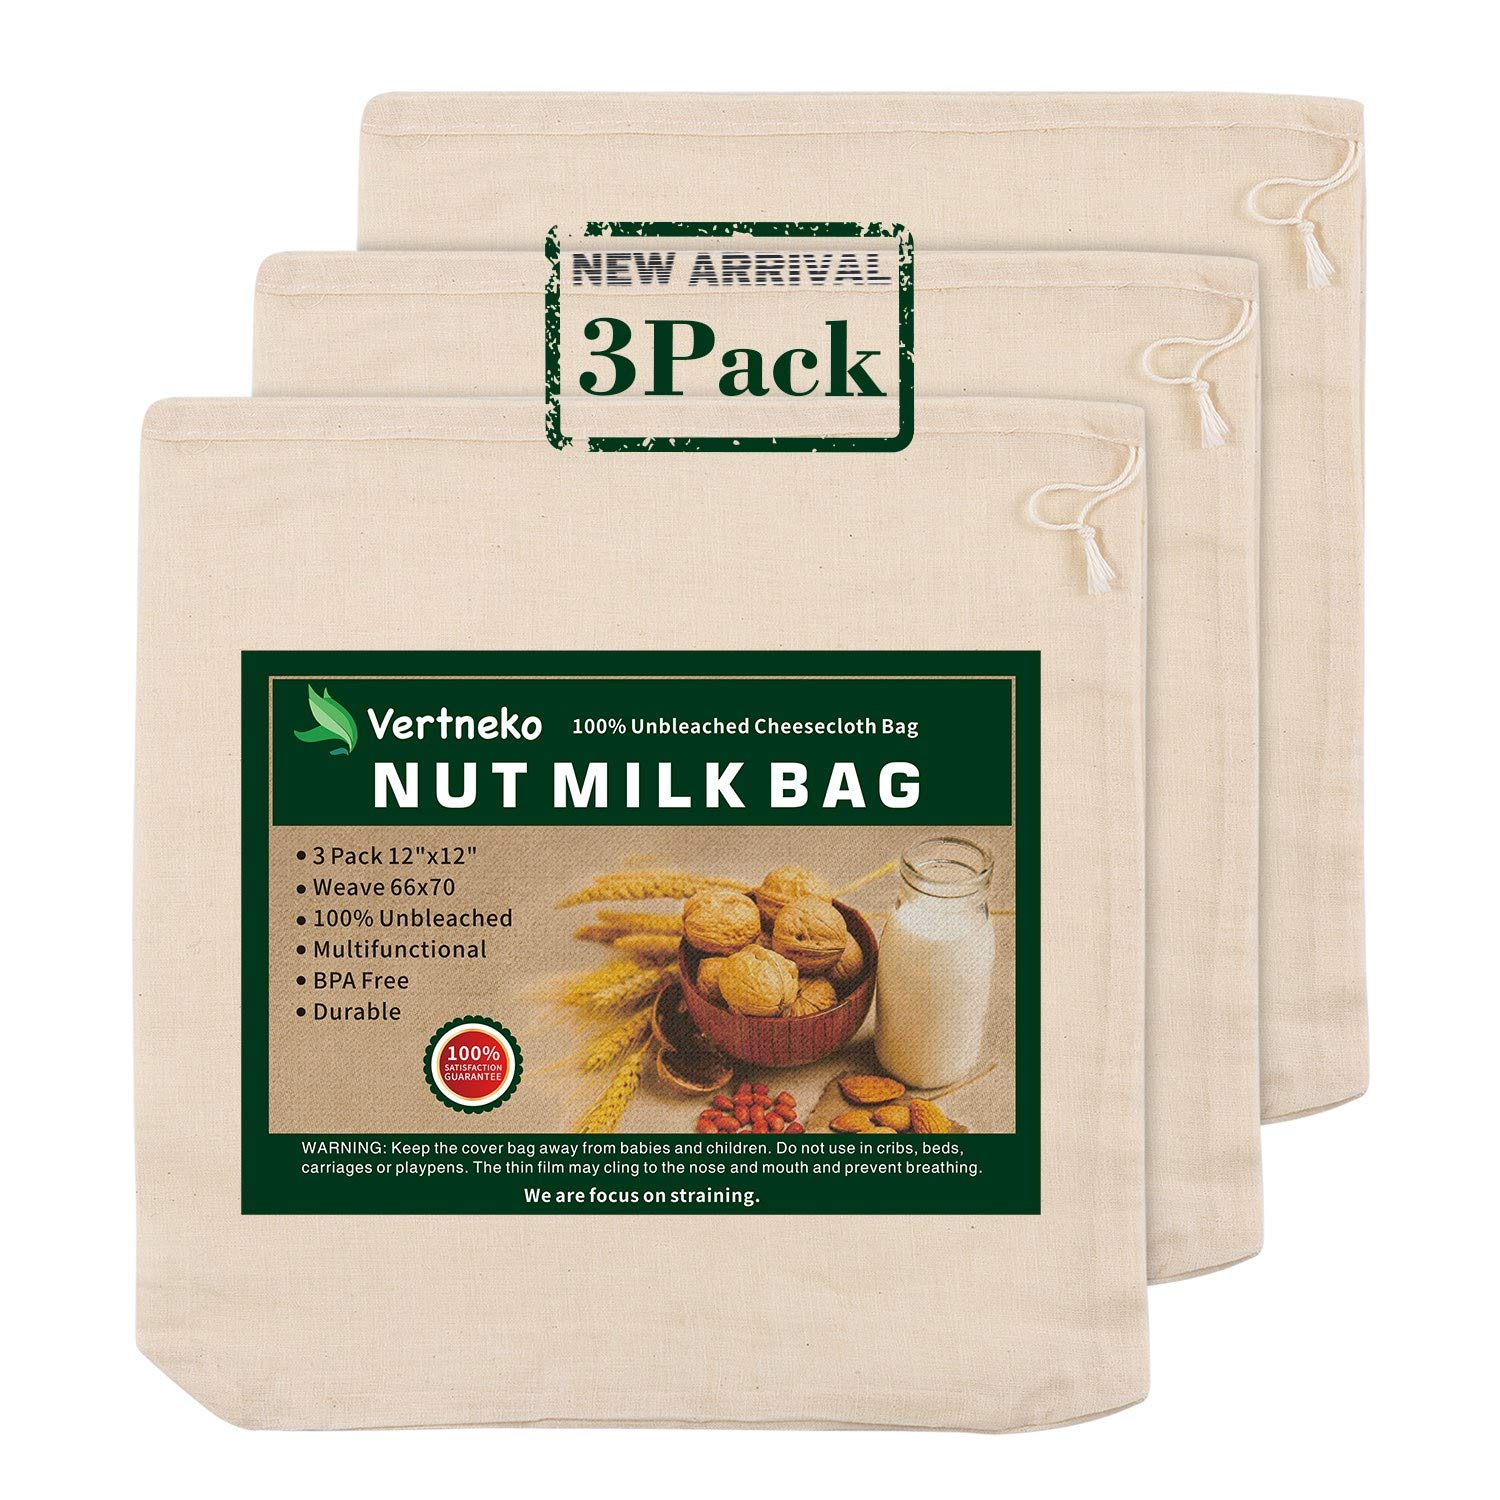 """Nut Milk Bag Reusable, 3 Pack 12"""" x 12"""" 100% Unbleached Cotton Cheesecloth Bags Strainer for Straining Almond/Soy Milk Greek Yogurt Cold Brew Coffee Tea Beer Juice Cheese Cloth"""